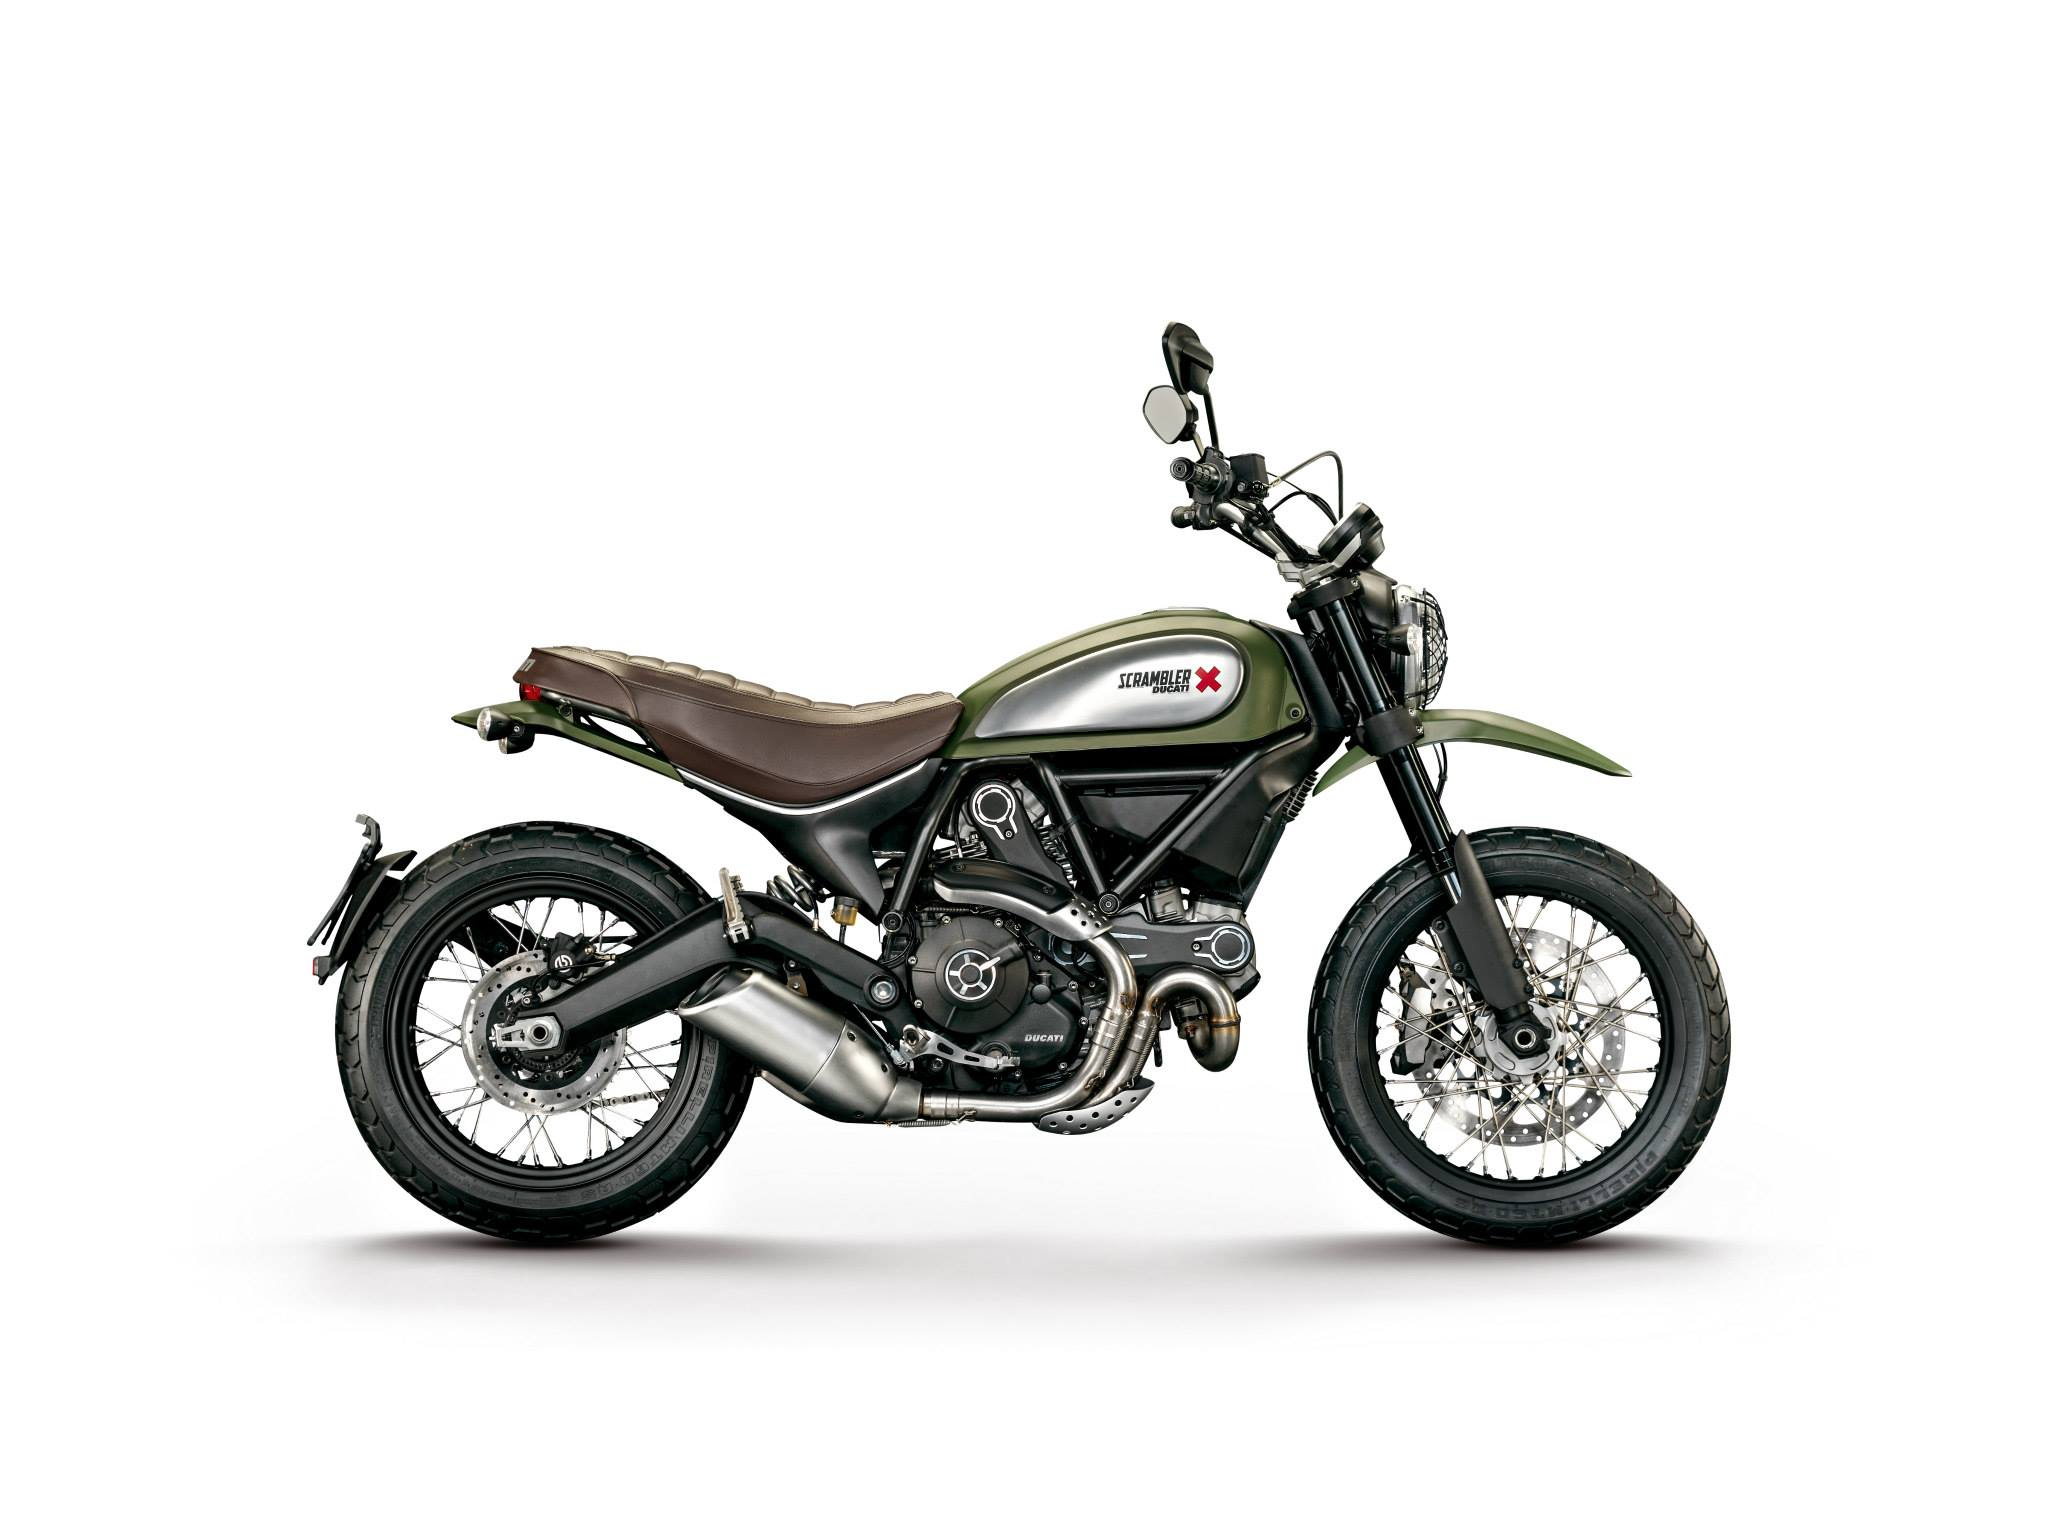 Ducati Scrambler Motorcycle and scooter rentals in Madrid (Spain)